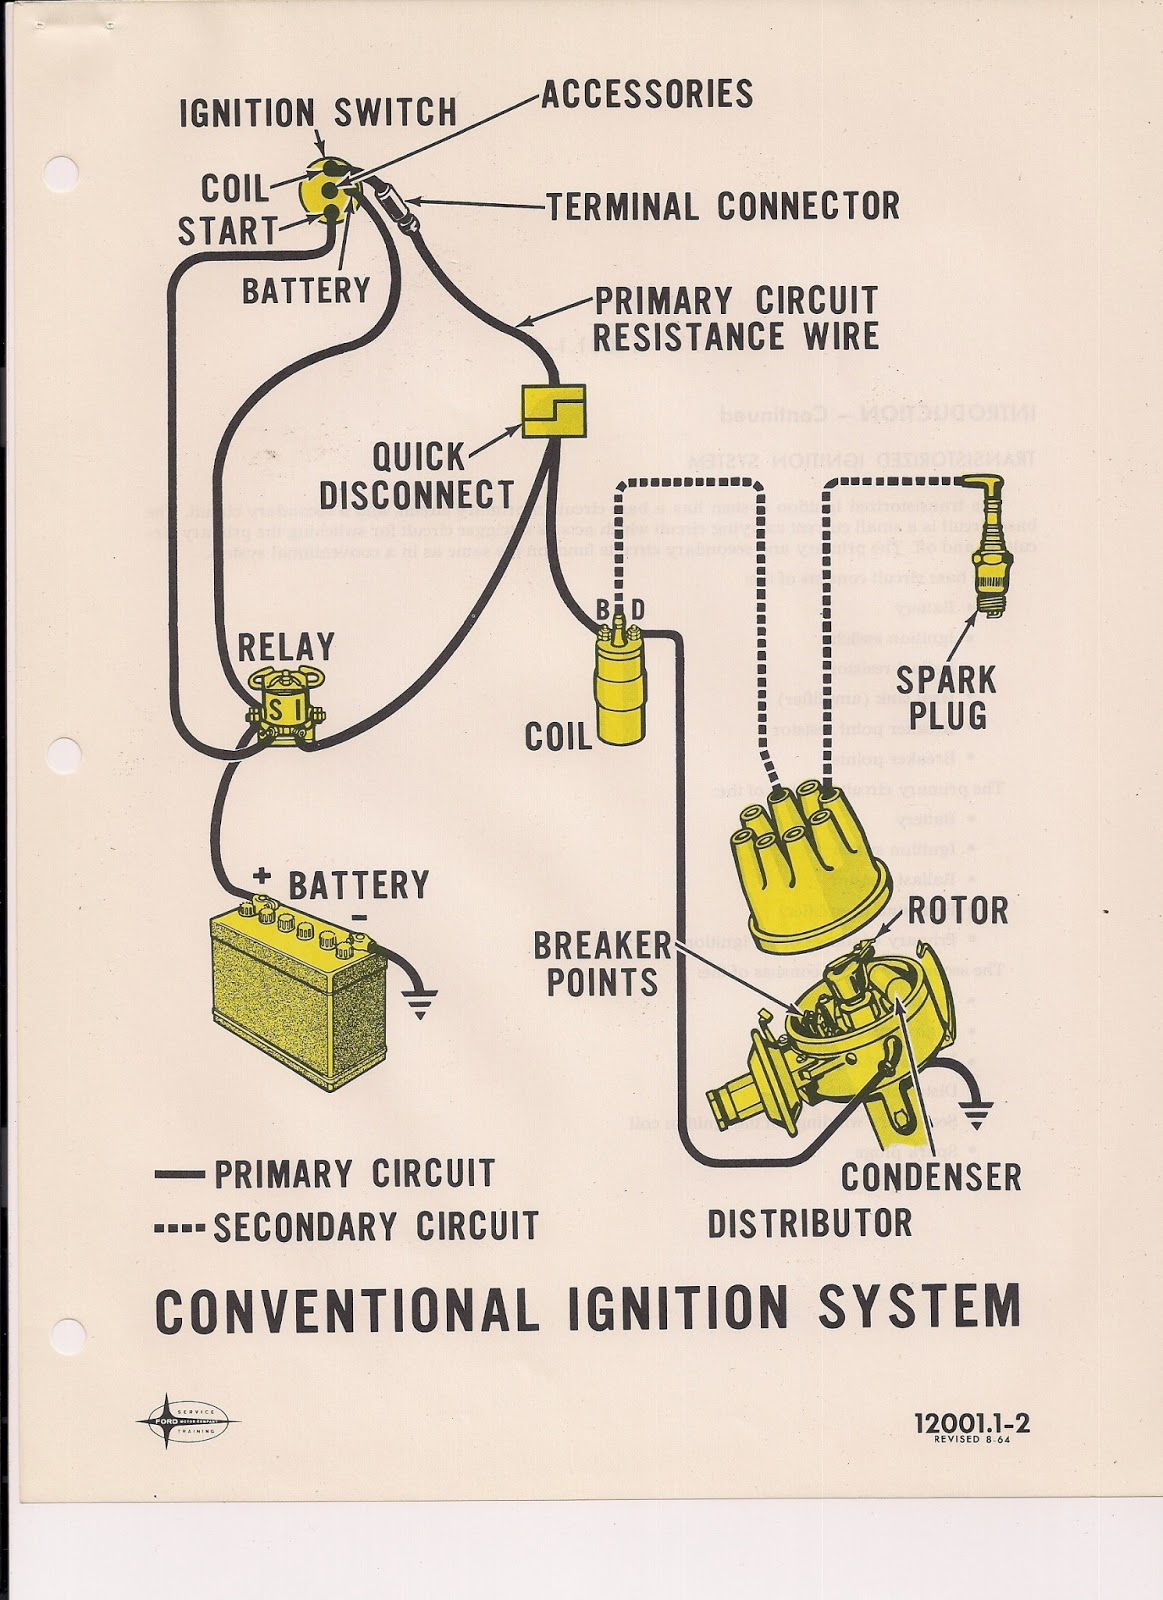 Ignition+1 the care and feeding of ponies mustang ignition system 1965 and 1966 66 mustang engine wiring diagram free at bayanpartner.co